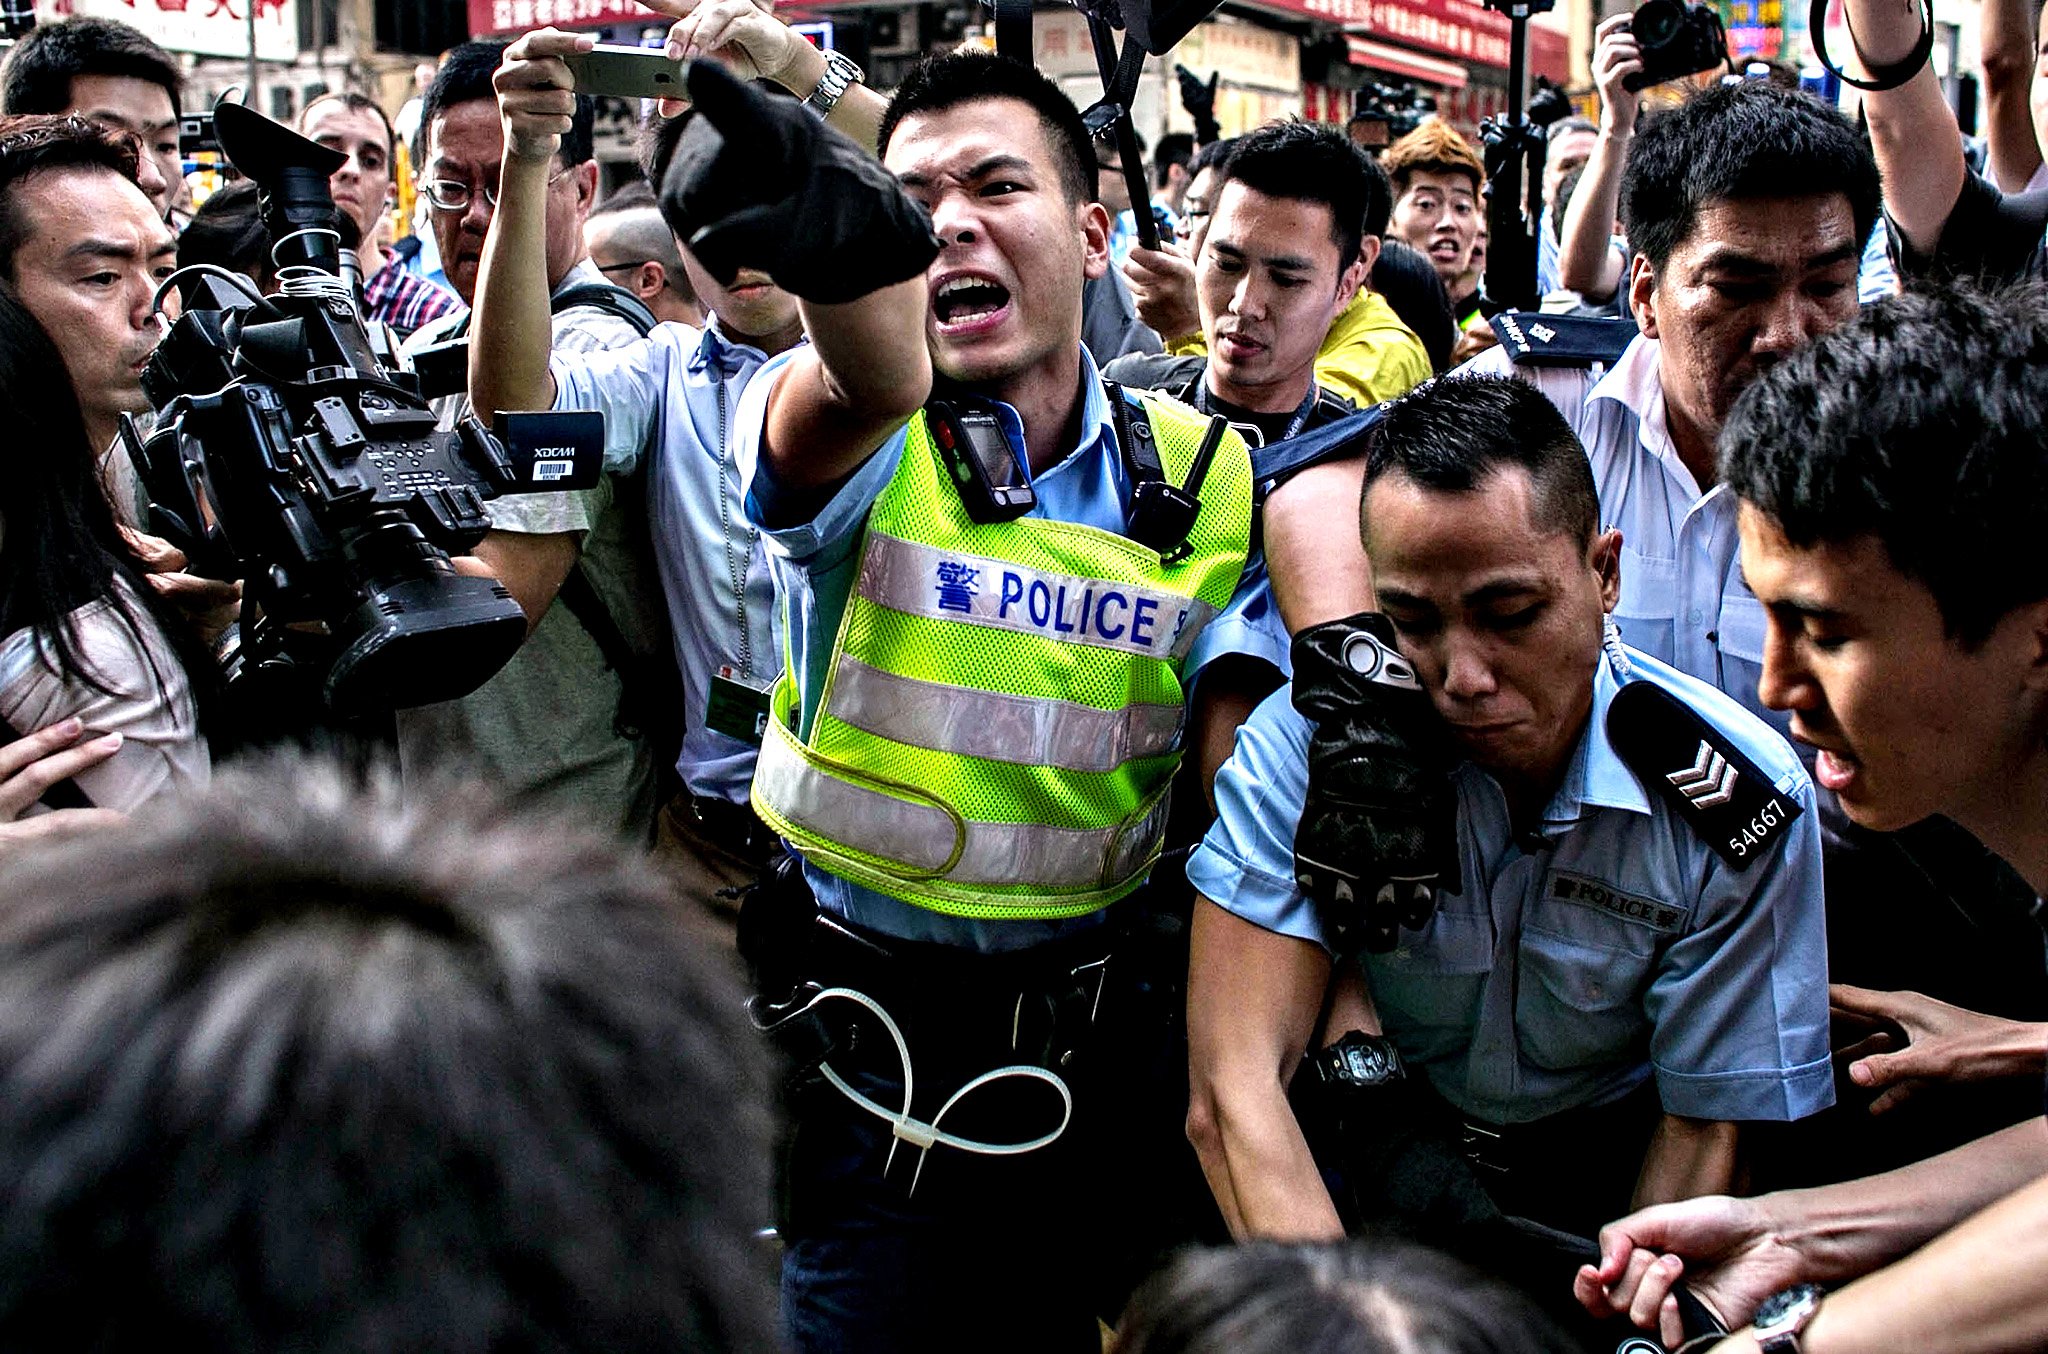 Police clash with protesters as they try to clear the street after agents authorized by bailiff's removed barricades on Argyle Street in Mongkok district on November 25, 2014 in Hong Kong. The Mong Kok protest site is scheduled for clearance by baliffs this week after Hong Kong's high court authorized police to arrest protesters who obstruct bailiffs on the three interim restraining orders.